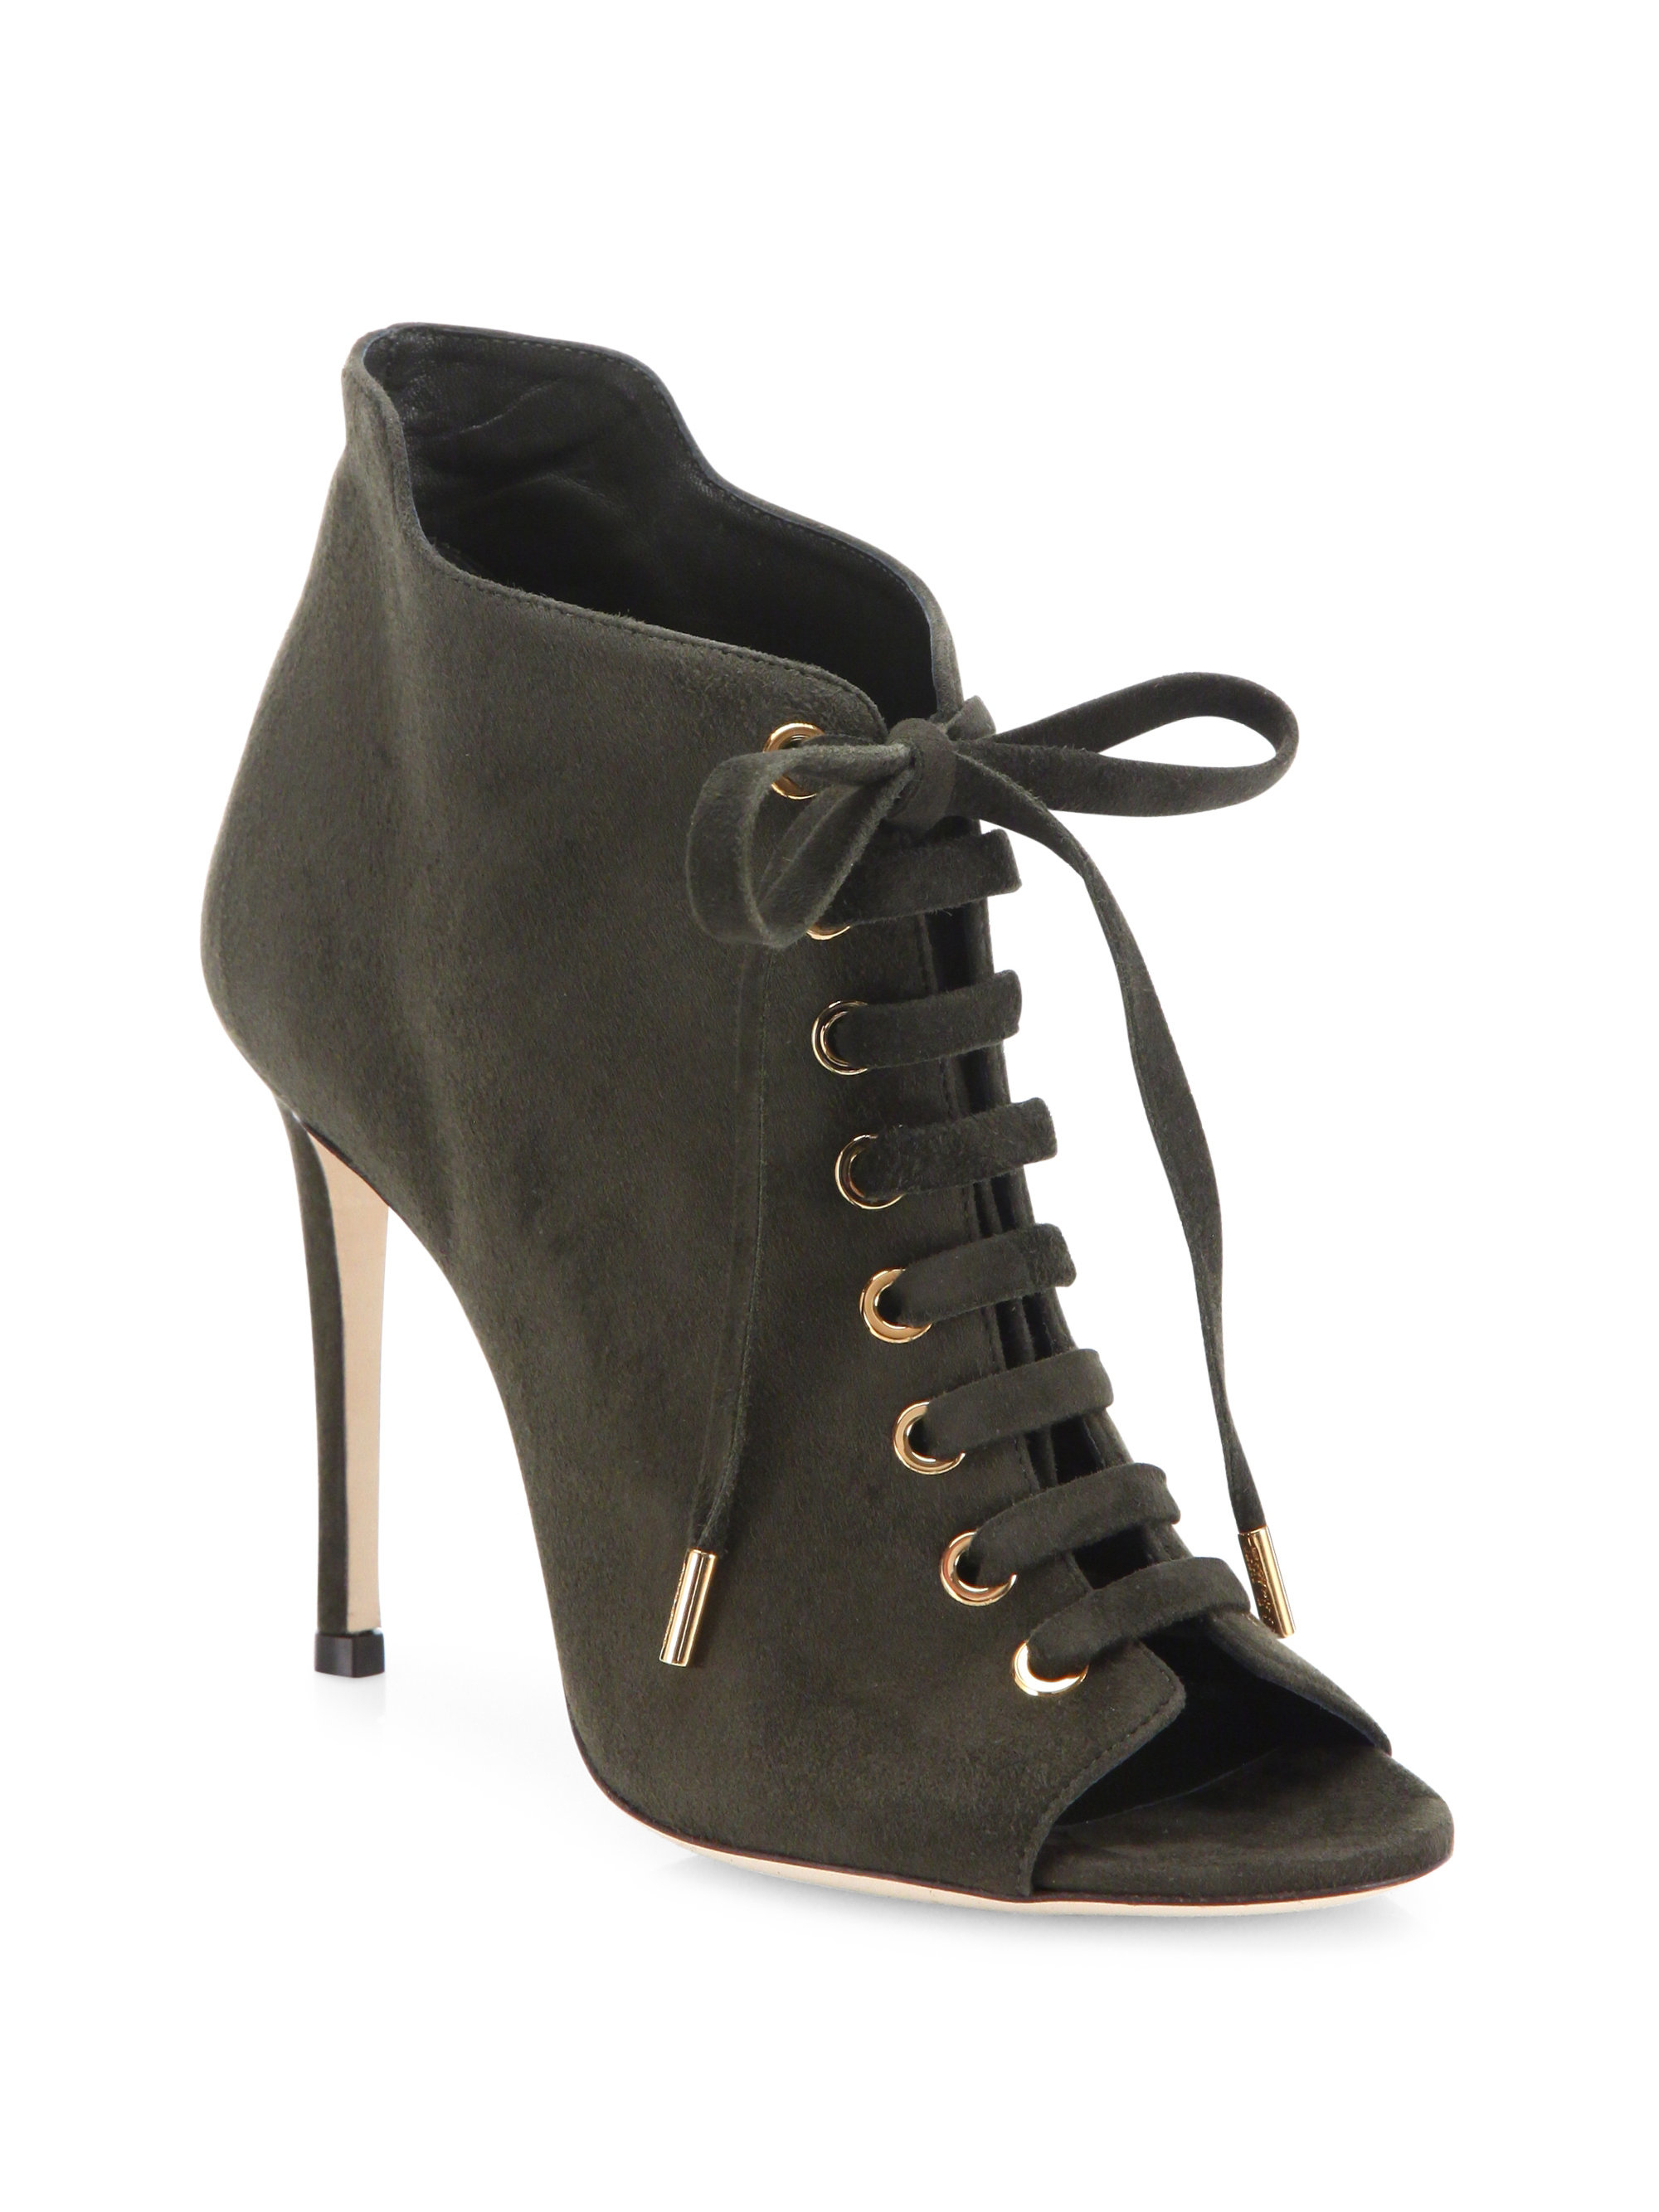 385cfce68d2 Jimmy choo Mavy Suede Peep-toe Lace-up Booties in Green